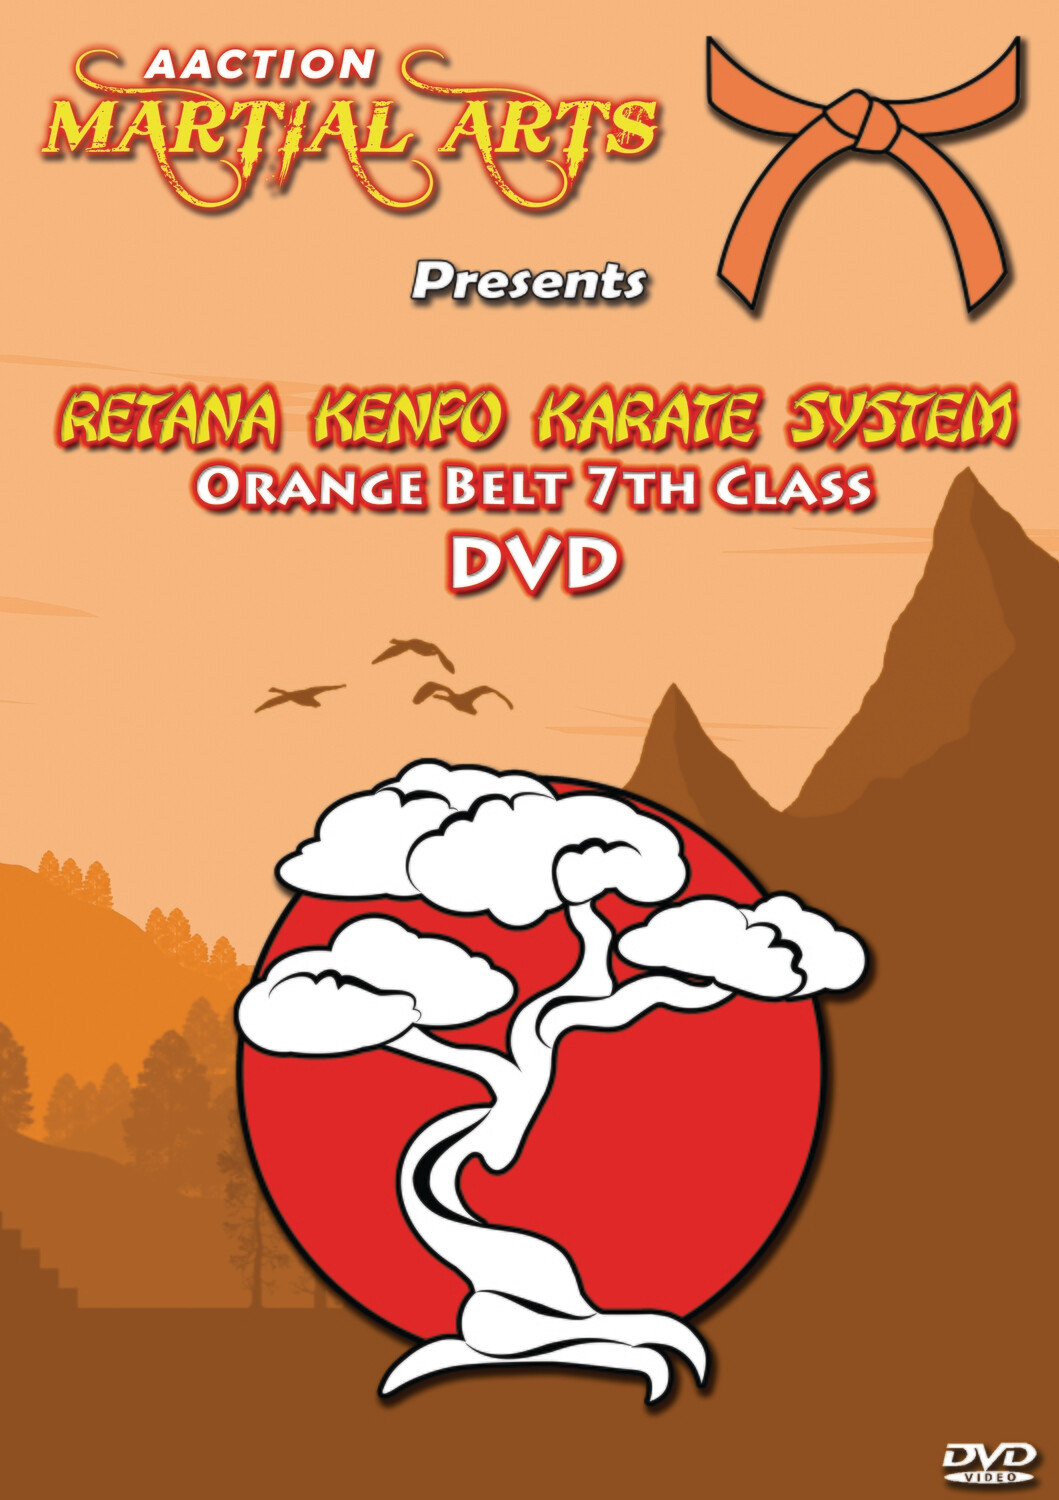 #2 Orange Belt DVD - Retana Kenpo Karate System